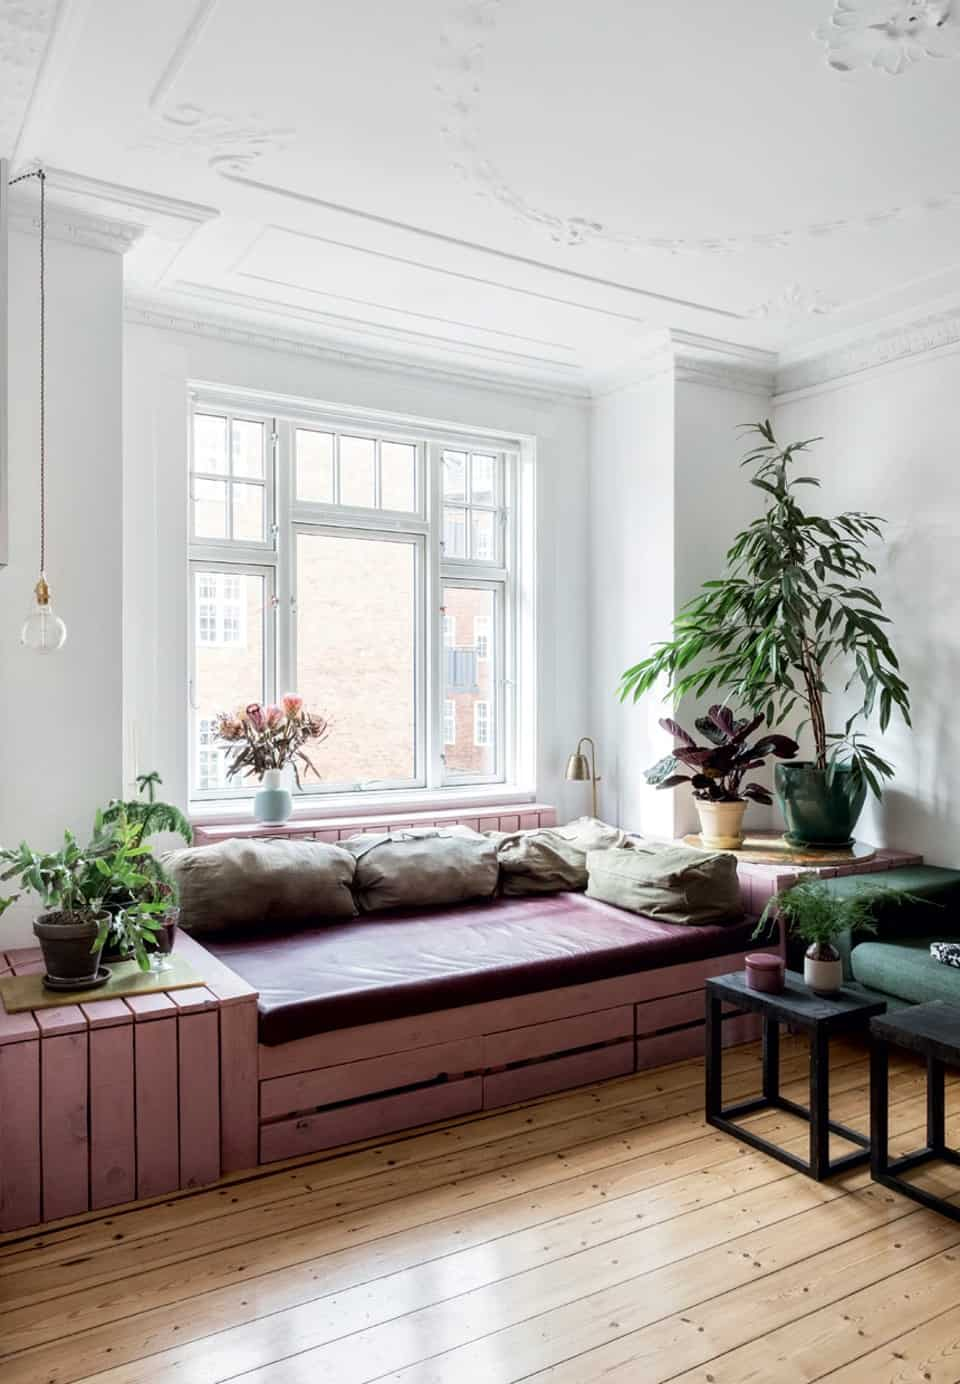 Spacious window seating